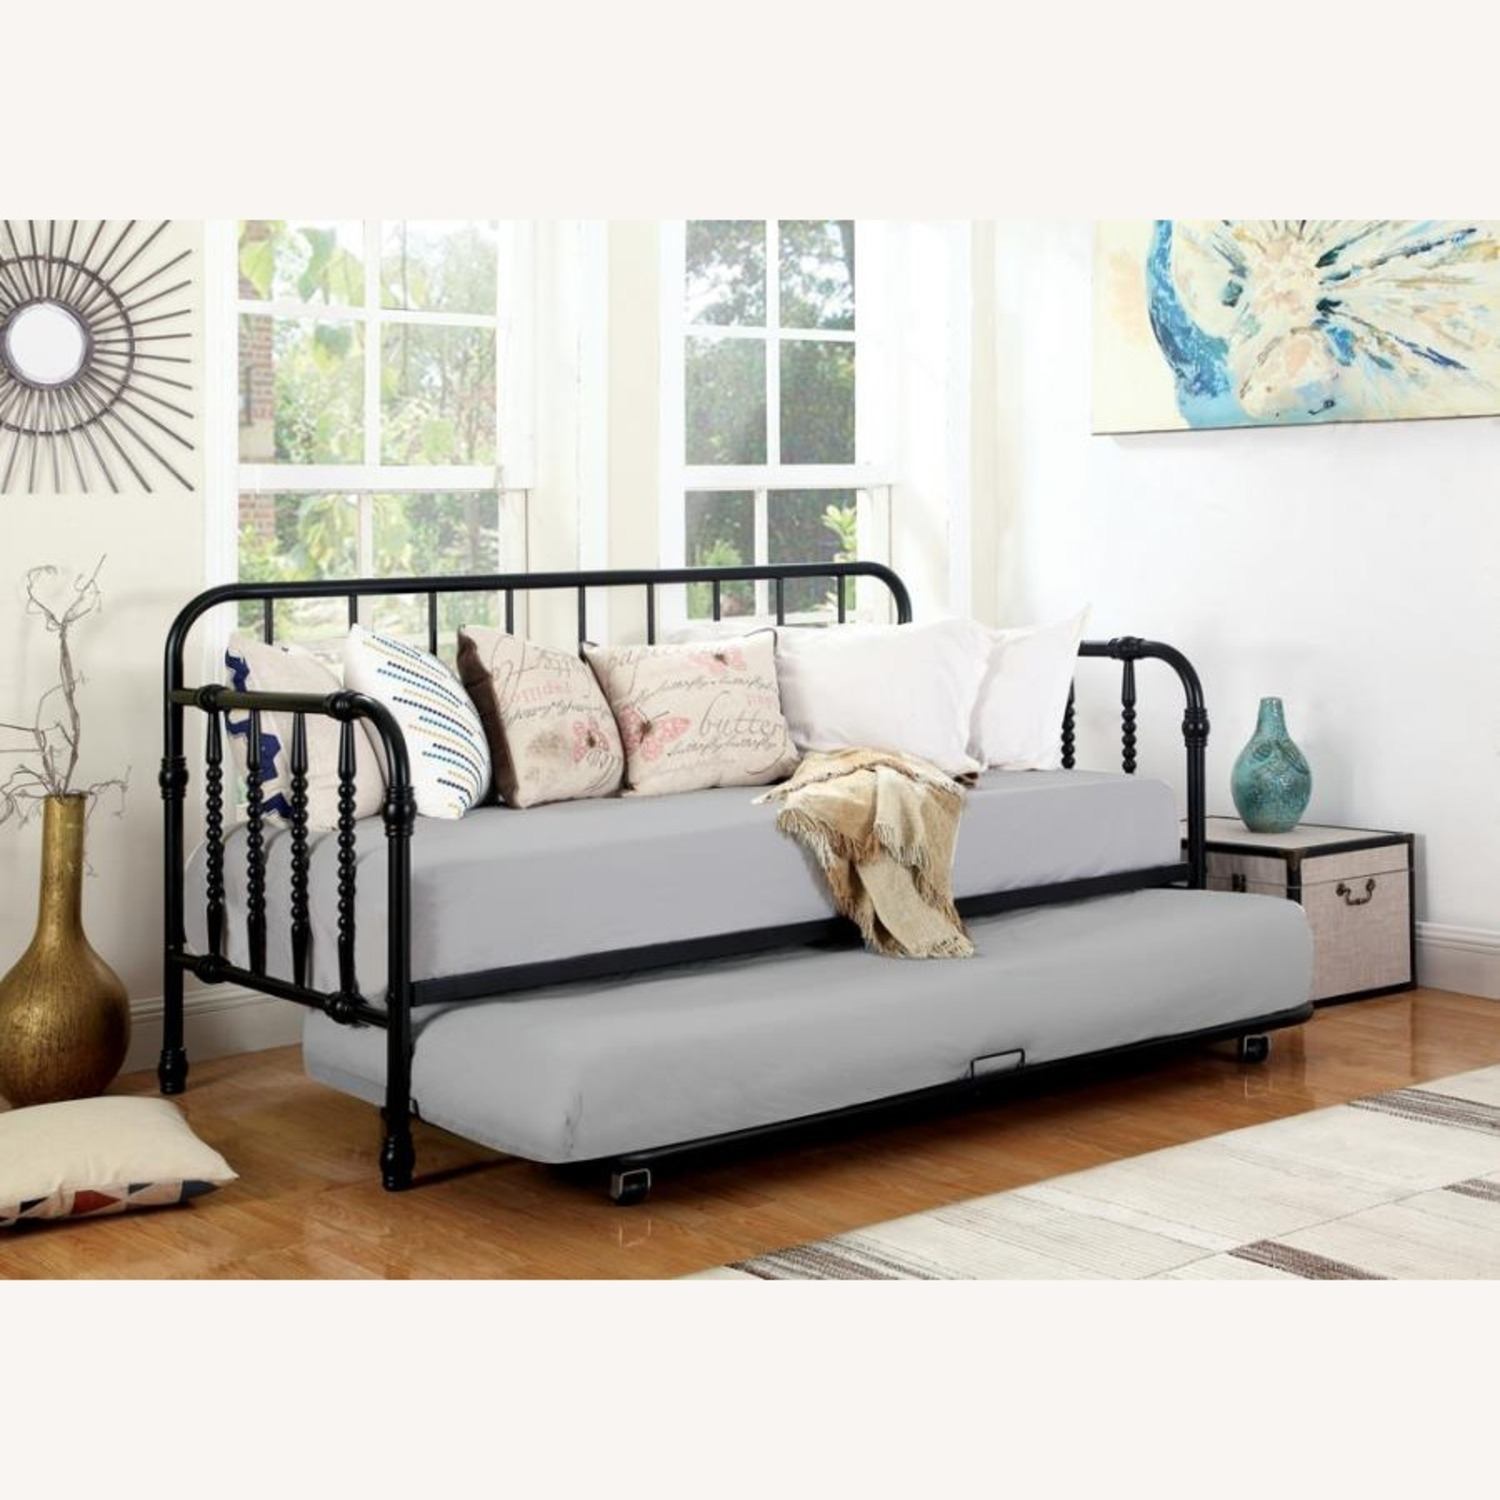 Twin Daybed In Black Metal Finish W/ Trundle - image-4